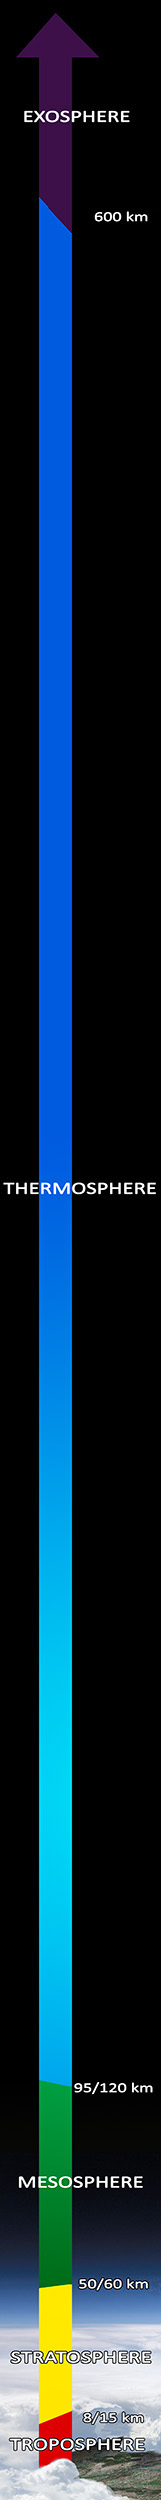 AtmosphereTerrestre HD.jpg